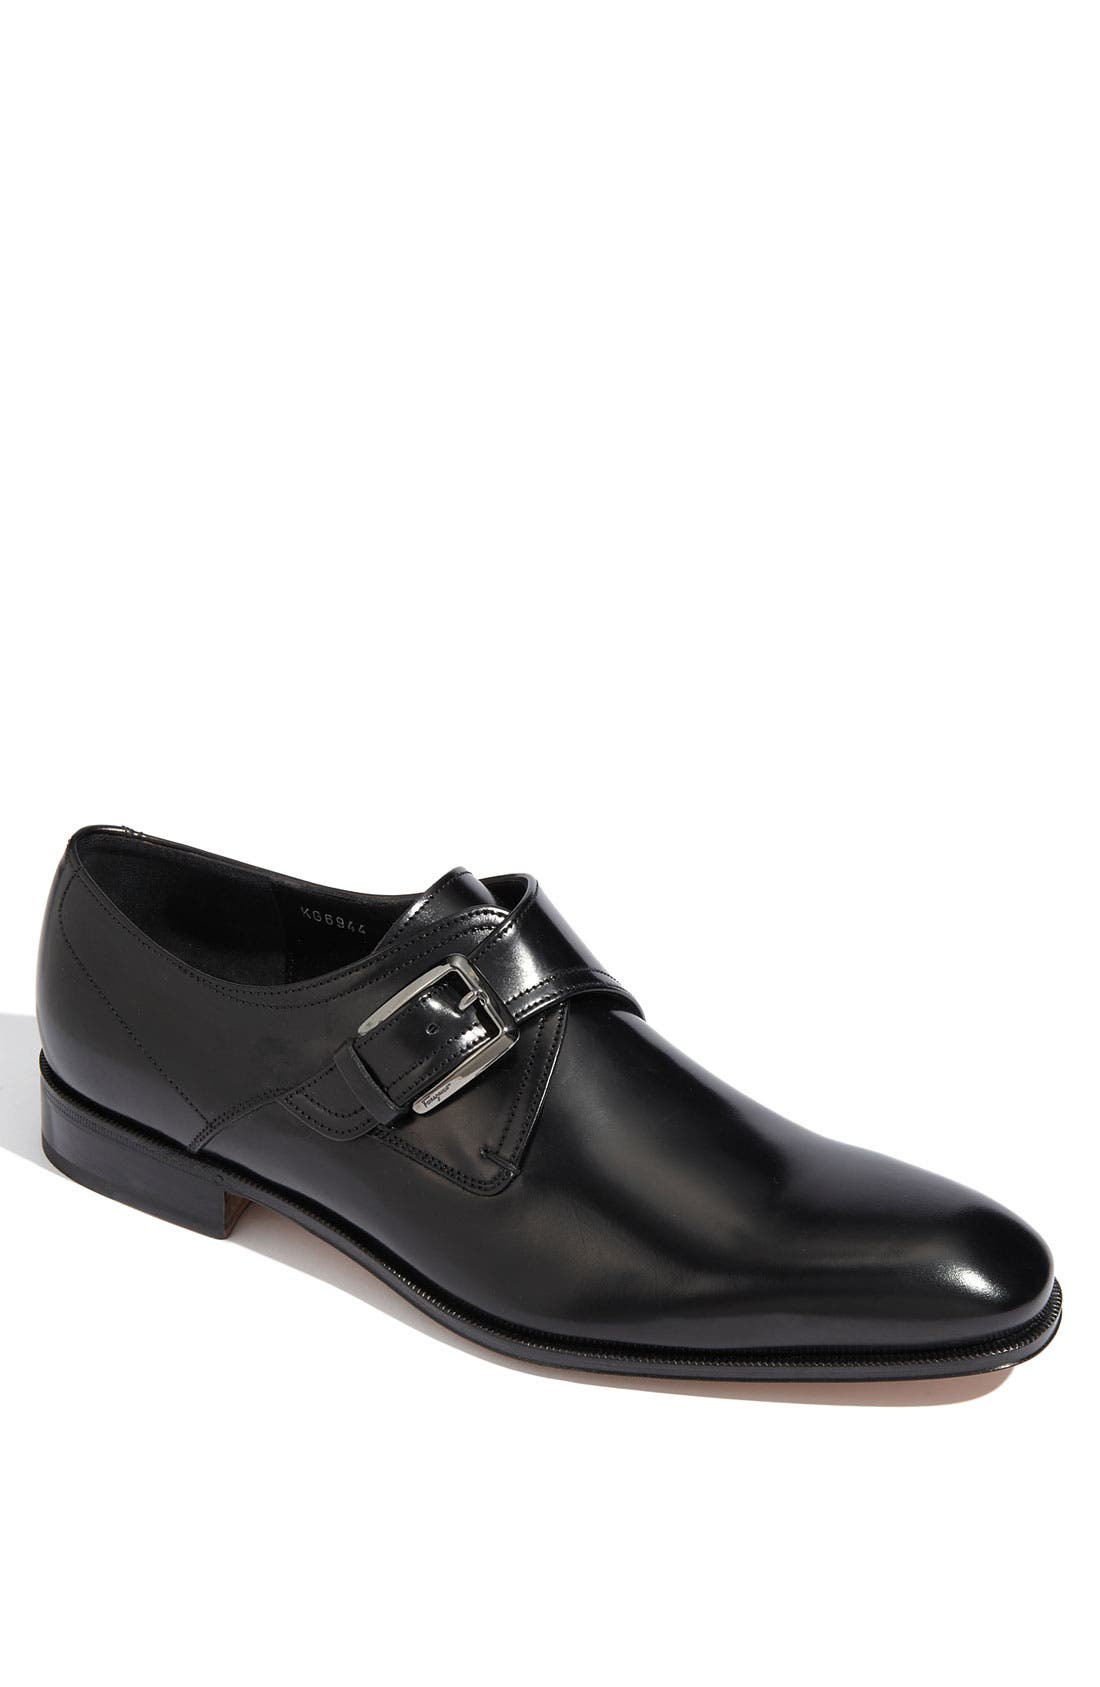 Main Image - Salvatore Ferragamo 'Cipro' Loafer